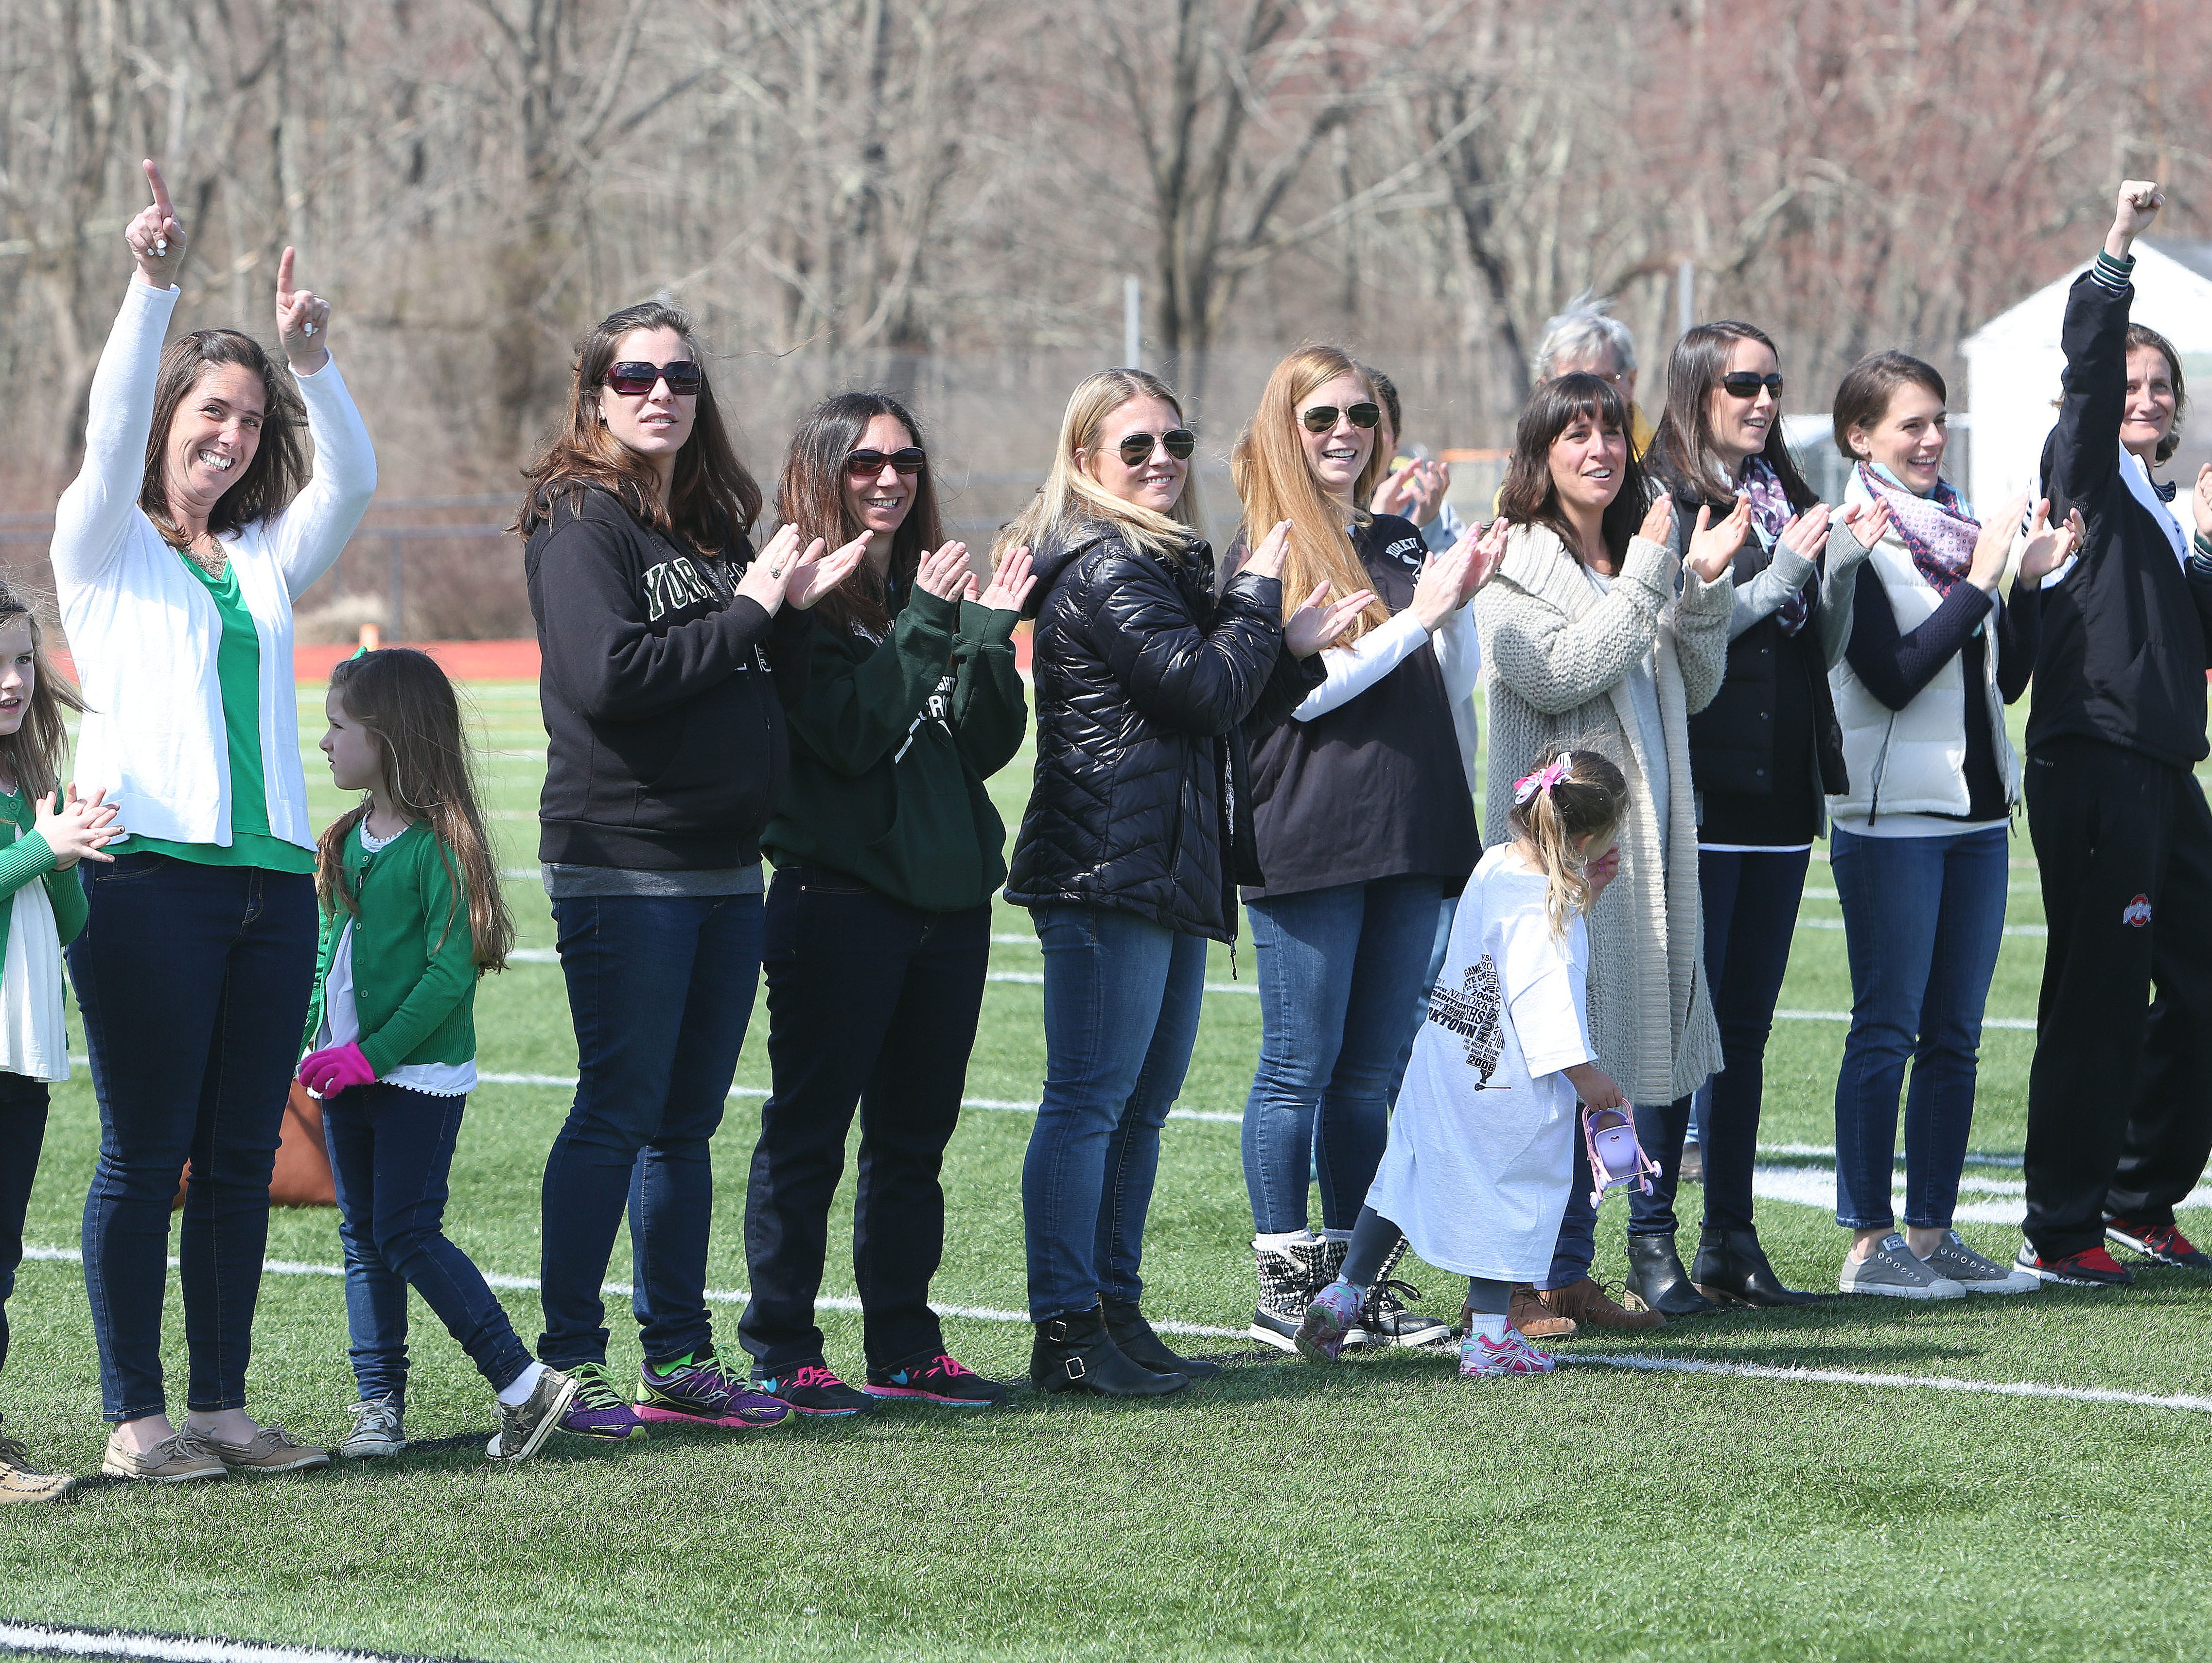 Former Yorktown girl's lacrosse state champions wave to the crowd as they are introduced during a halftime ceremony honoring the past state championship teams at Yorktown High School during game against Arlington March 26, 2016.